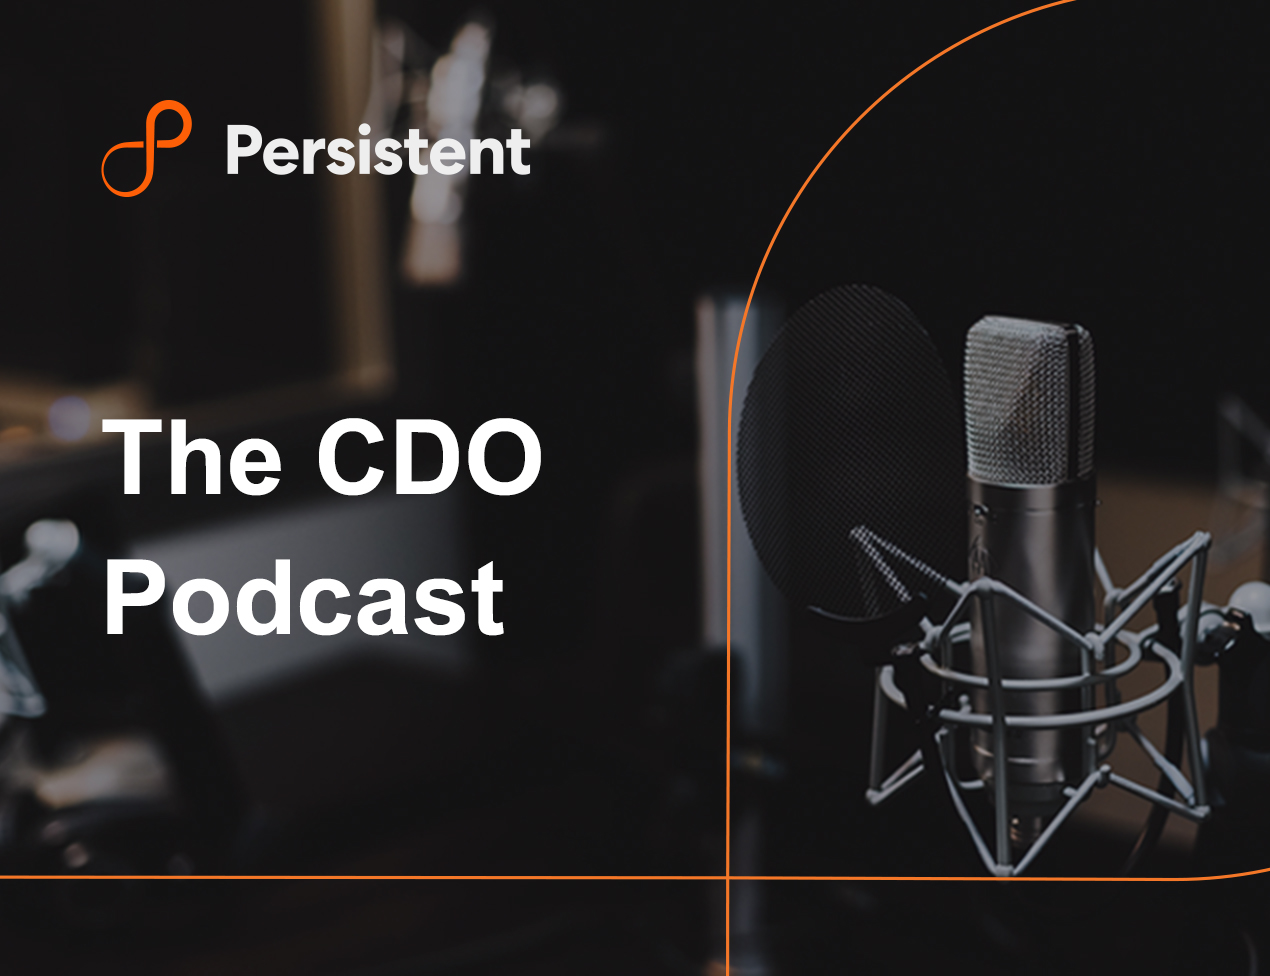 Podcast that helps you think like a CDO